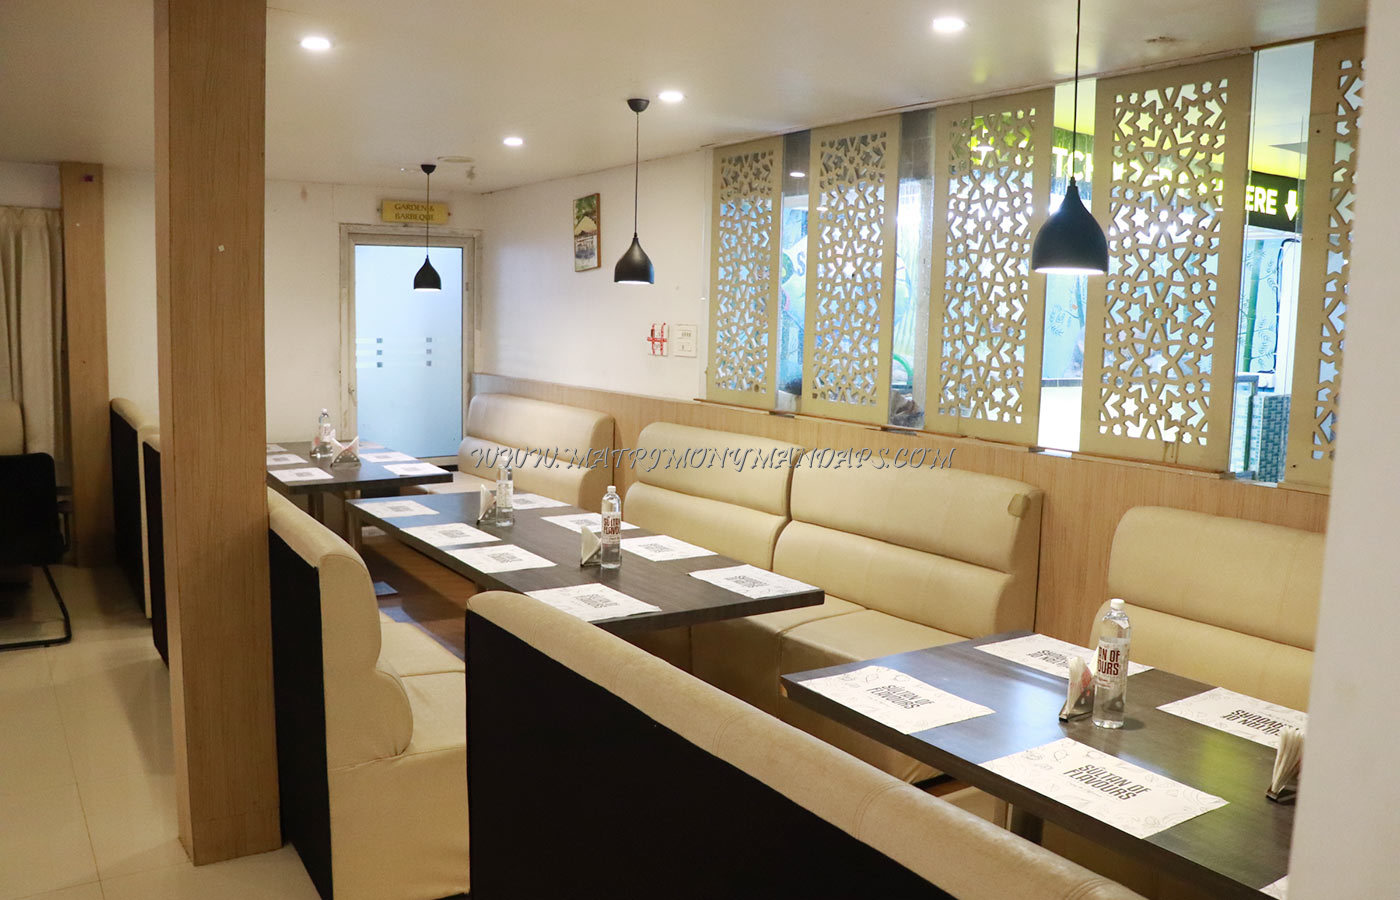 Find the availability of the Sultan Of Flavours Restaurant Hall (A/C) in Palakkad Town, Palakkad and avail special offers